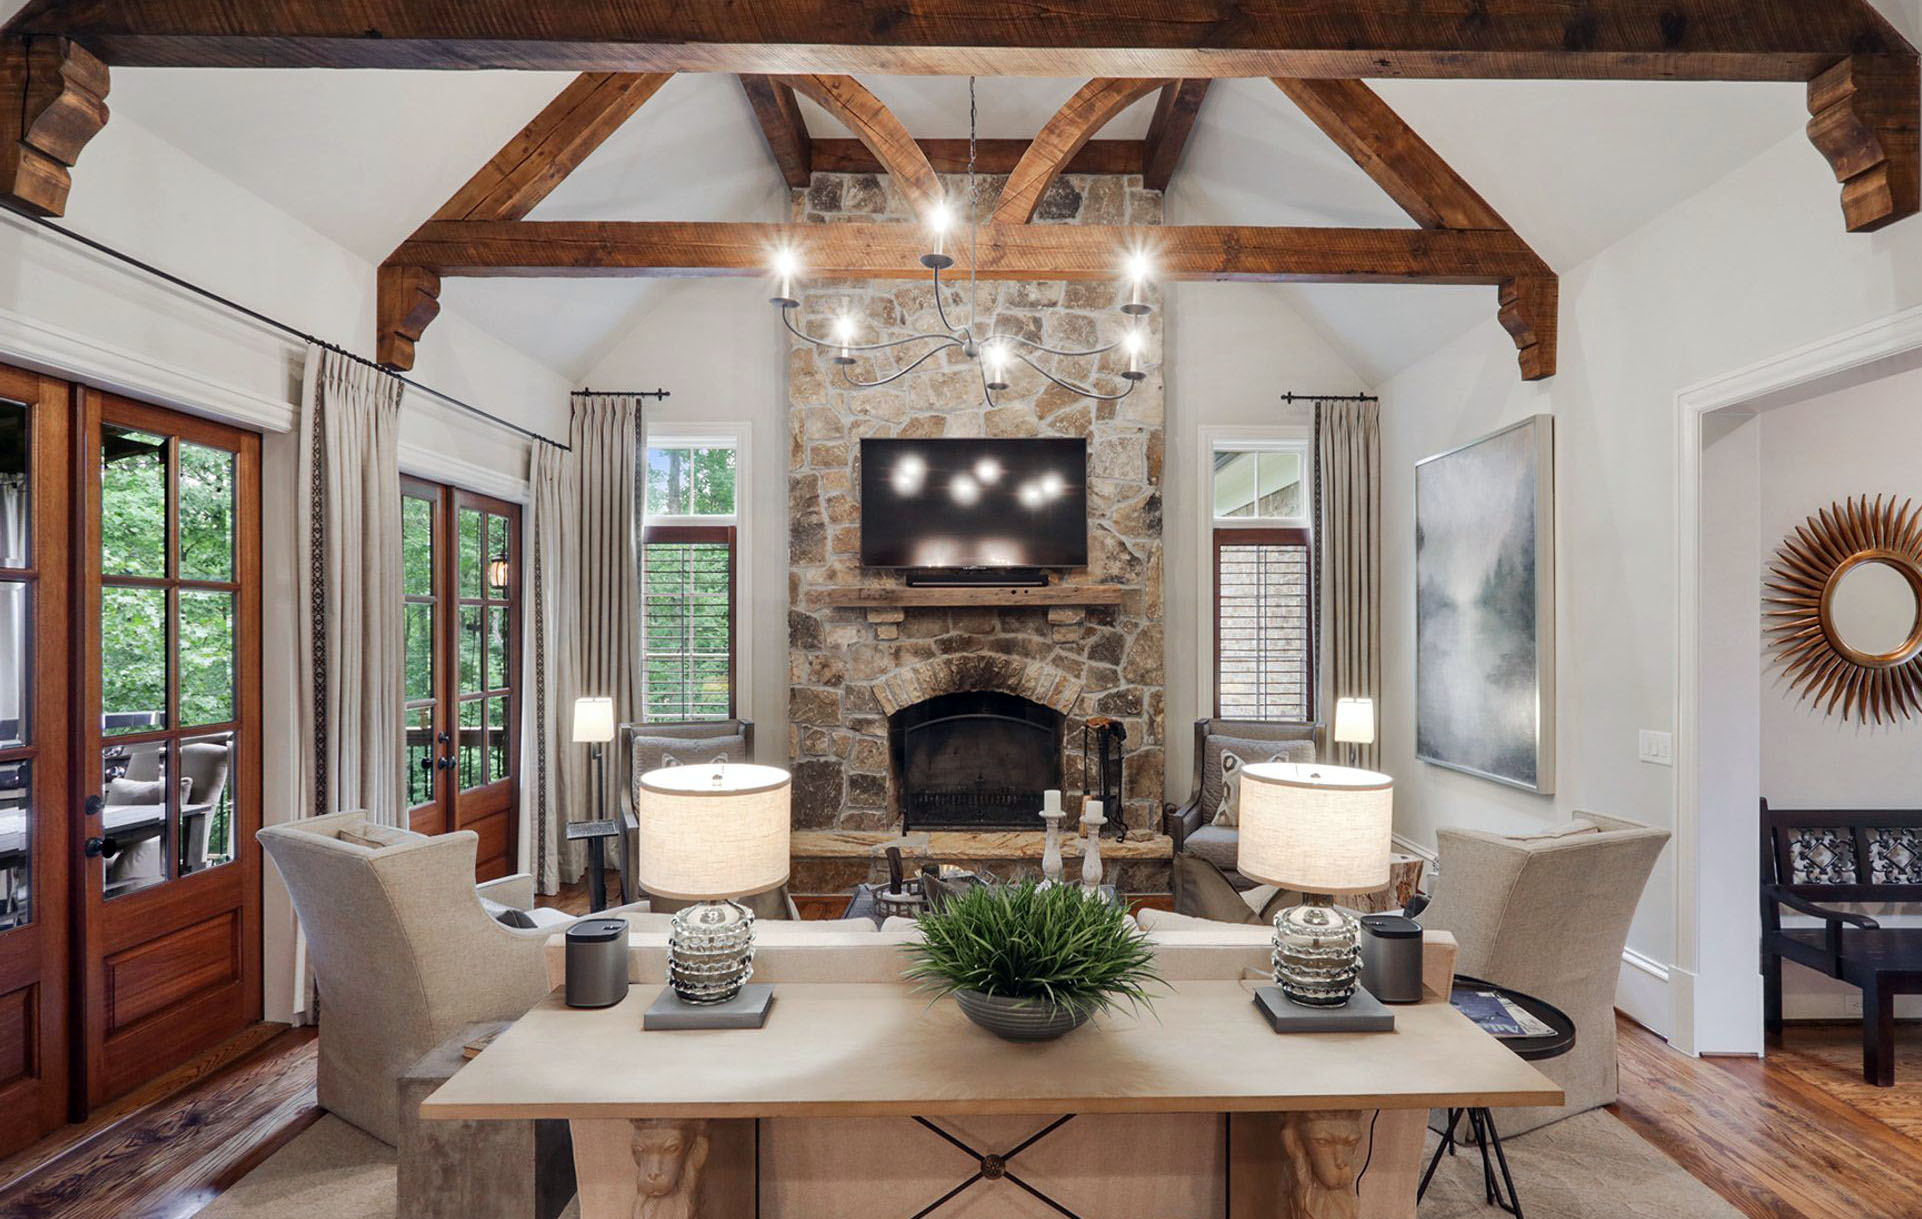 Real stone wood burning fireplace with a wood shelf and flat screen TV.